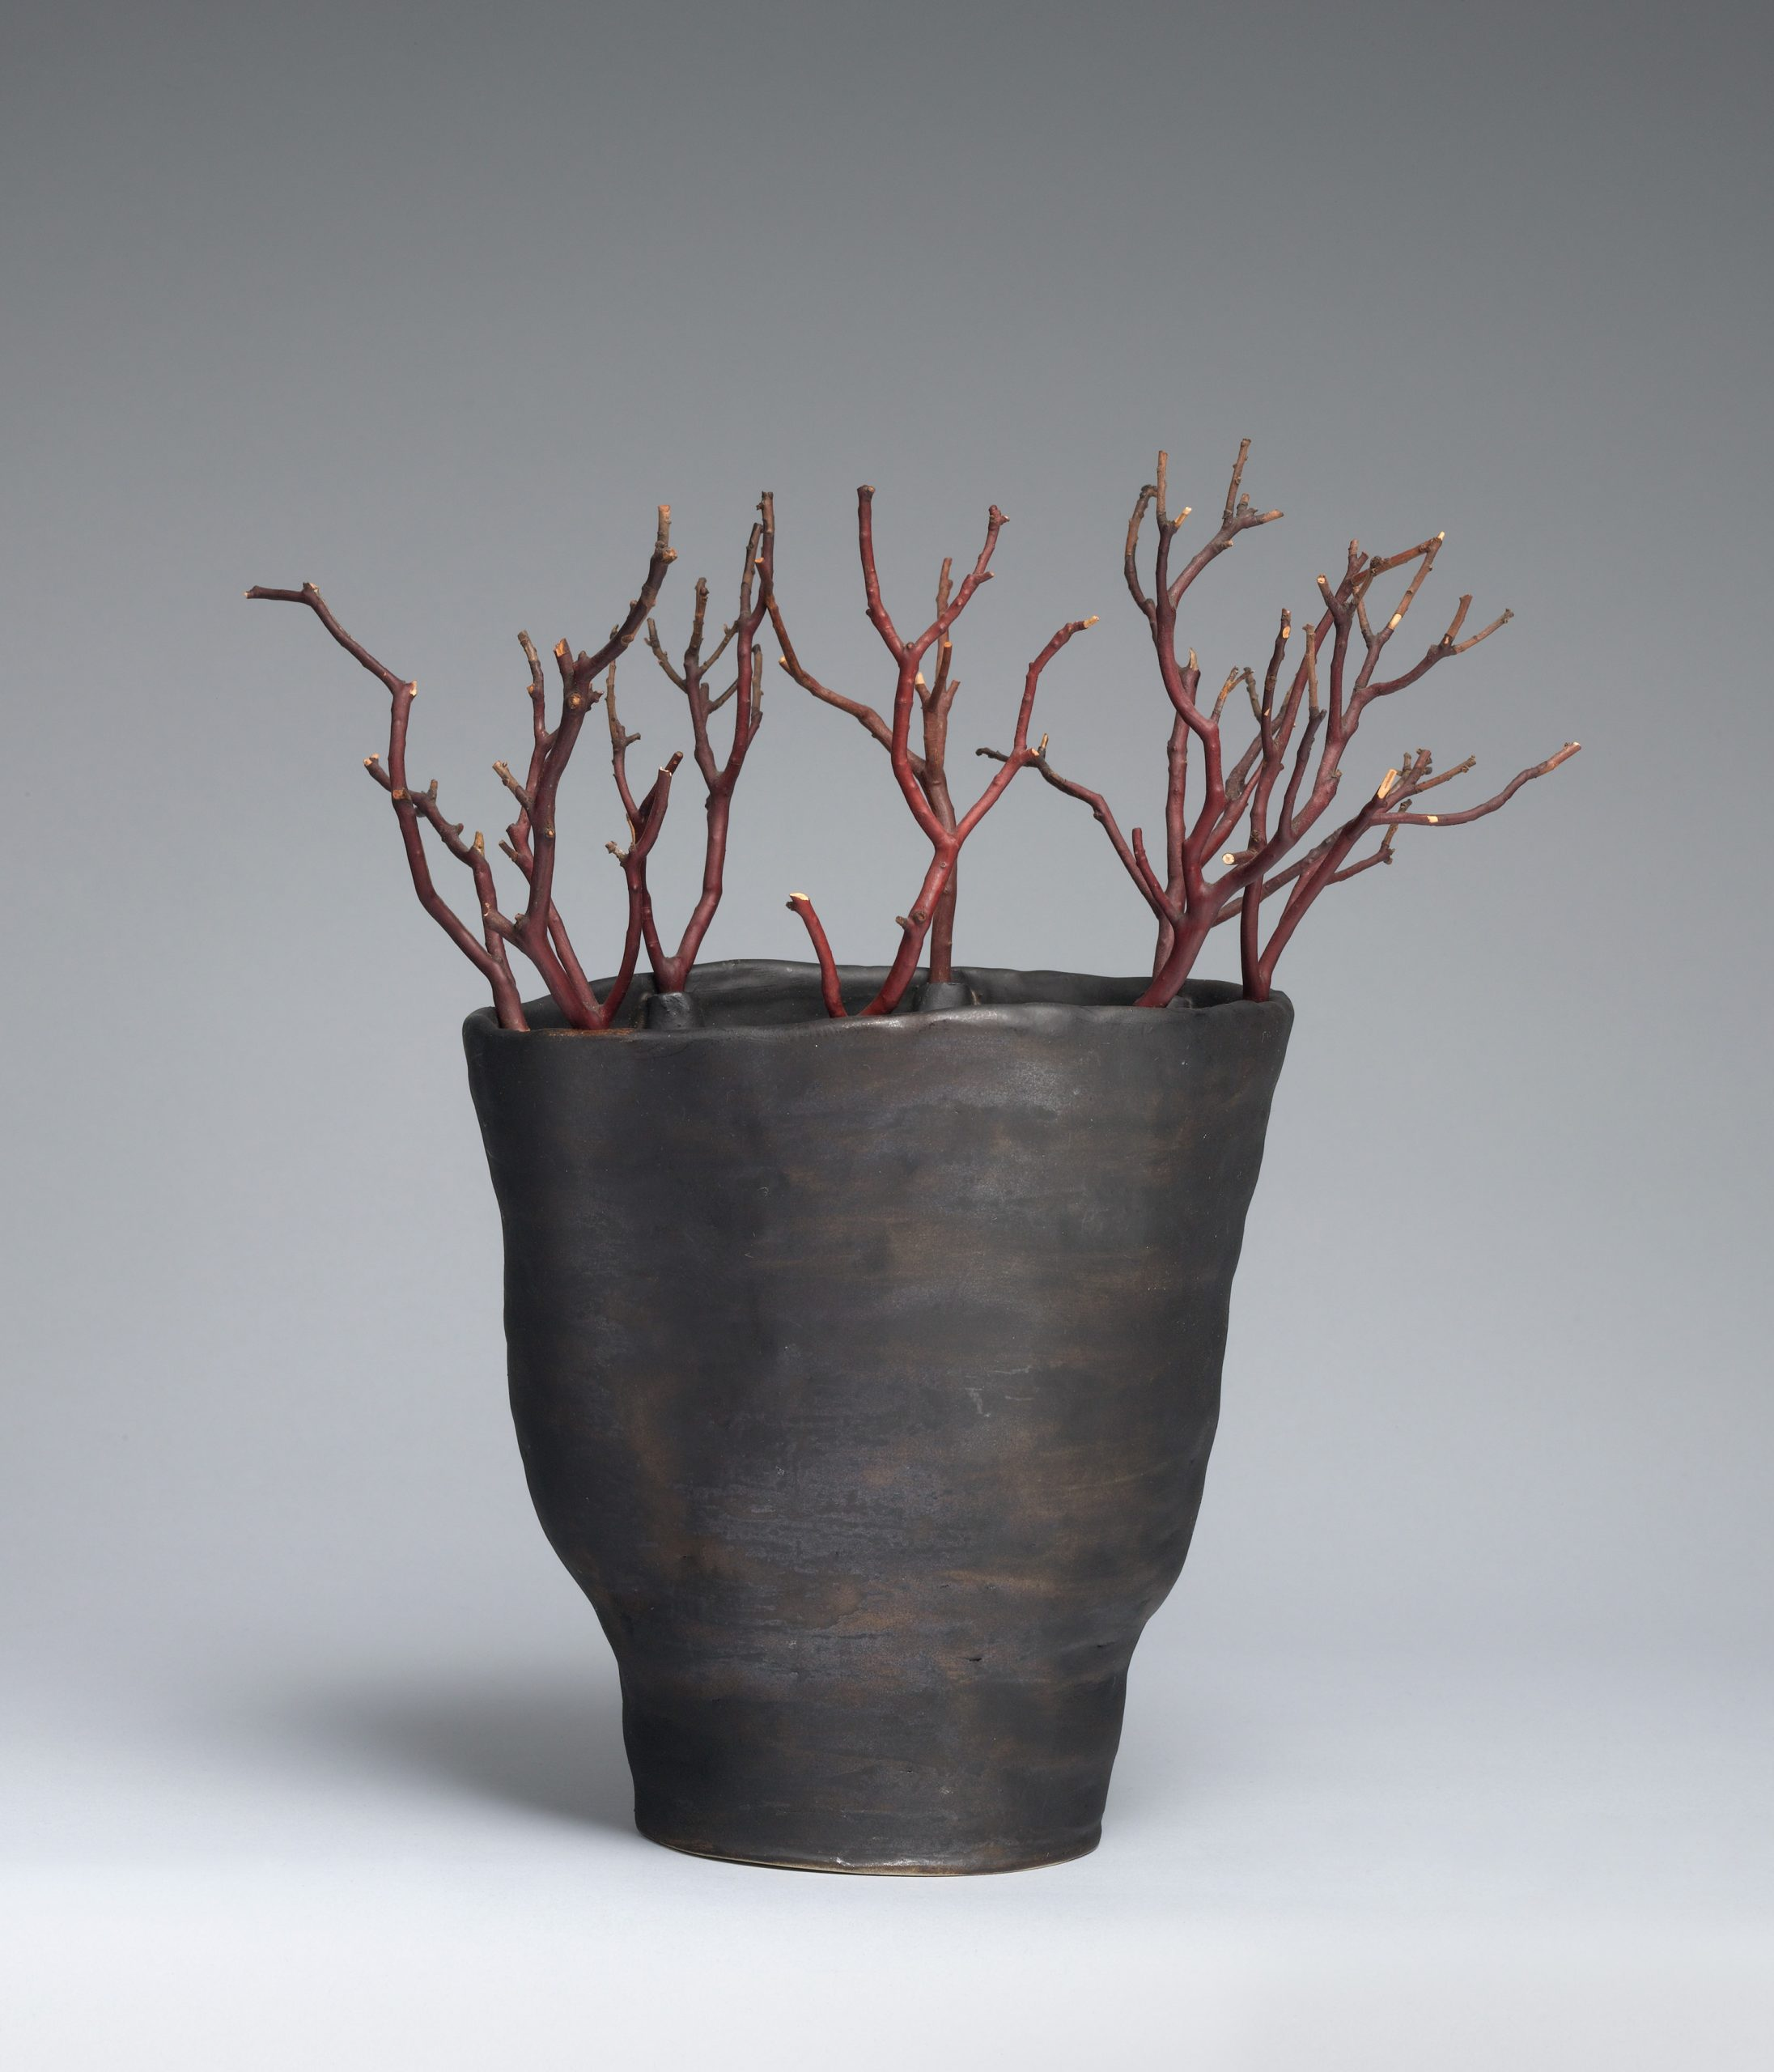 A black vase with an uneven surface holding dark red twigs.